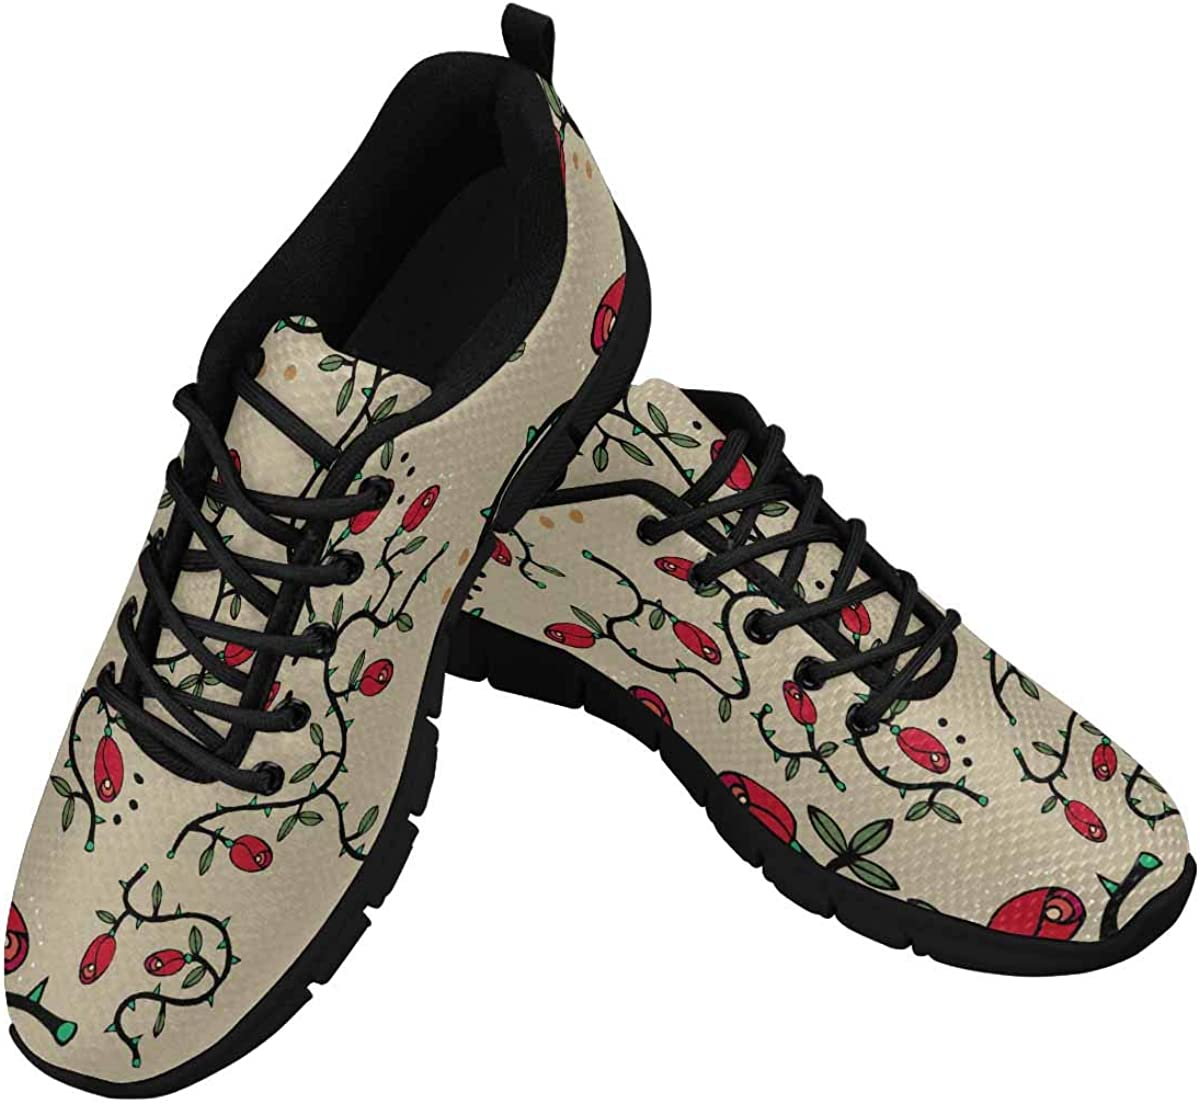 INTERESTPRINT Hand Drawn Pattern with Red Roses Women's Lightweight Athletic Casual Gym Sneakers